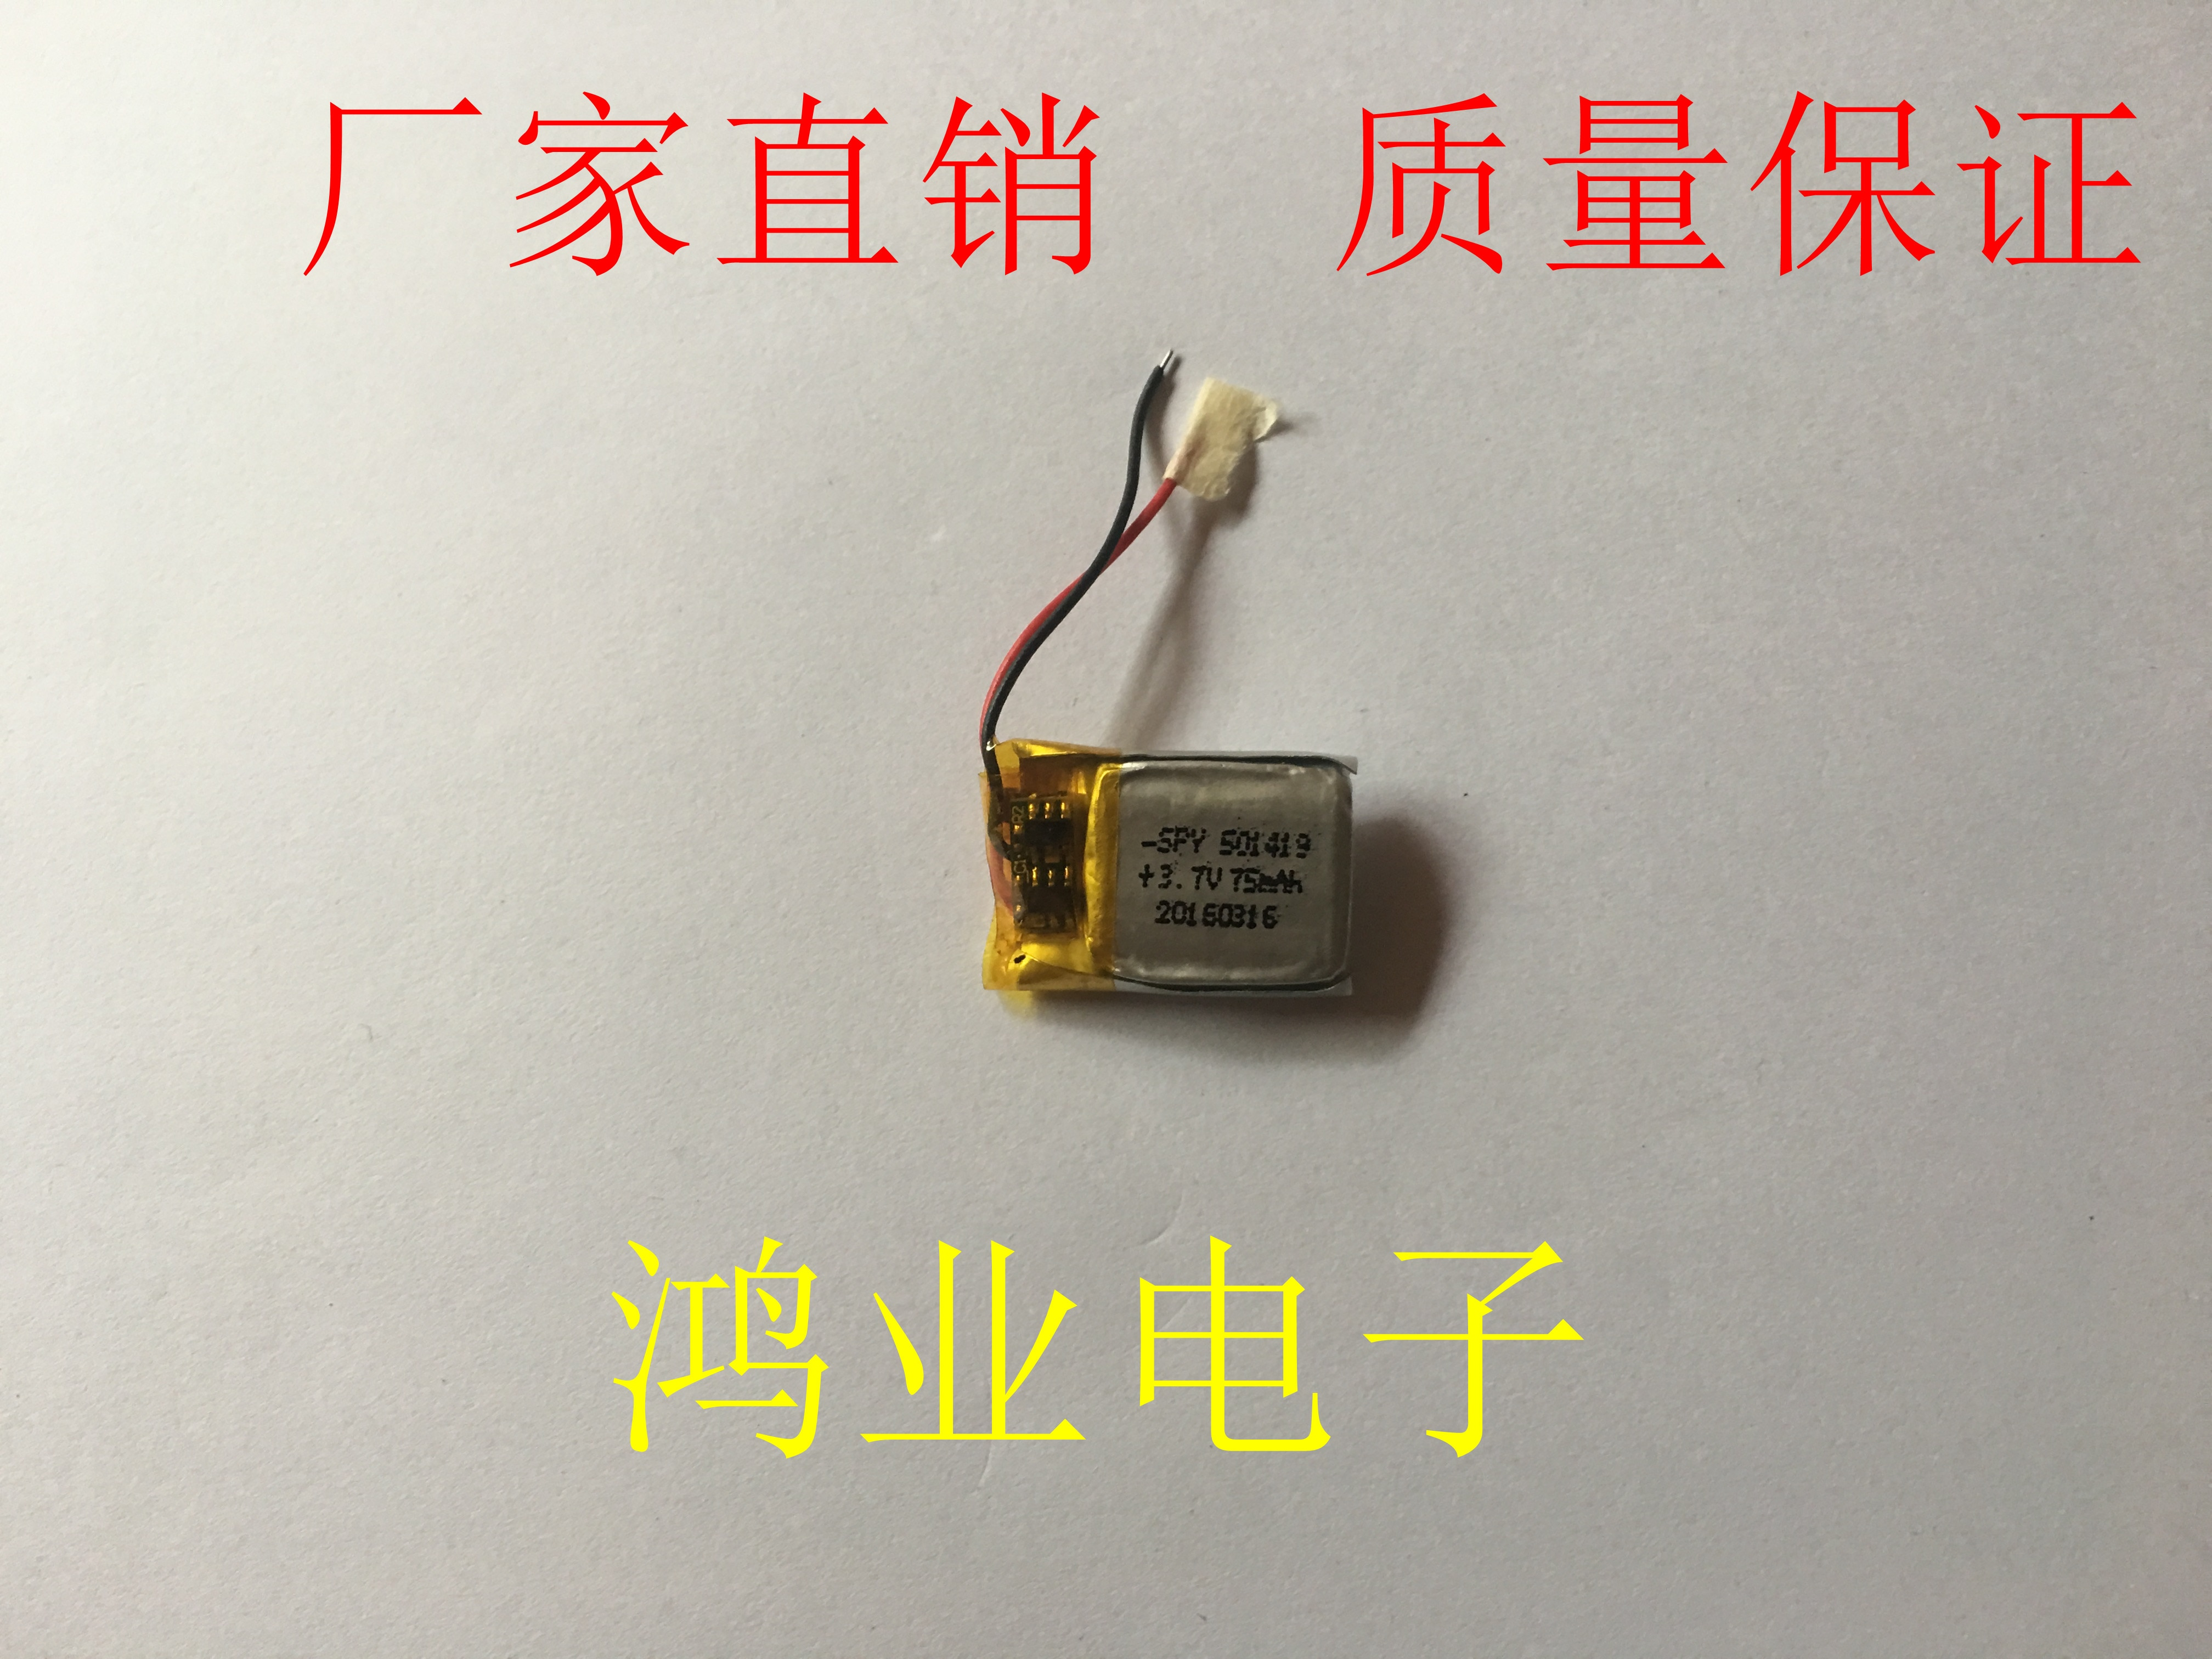 New 3.7V polymer lithium battery, 501419P Bluetooth headset battery, /3D eye and other electronic pr